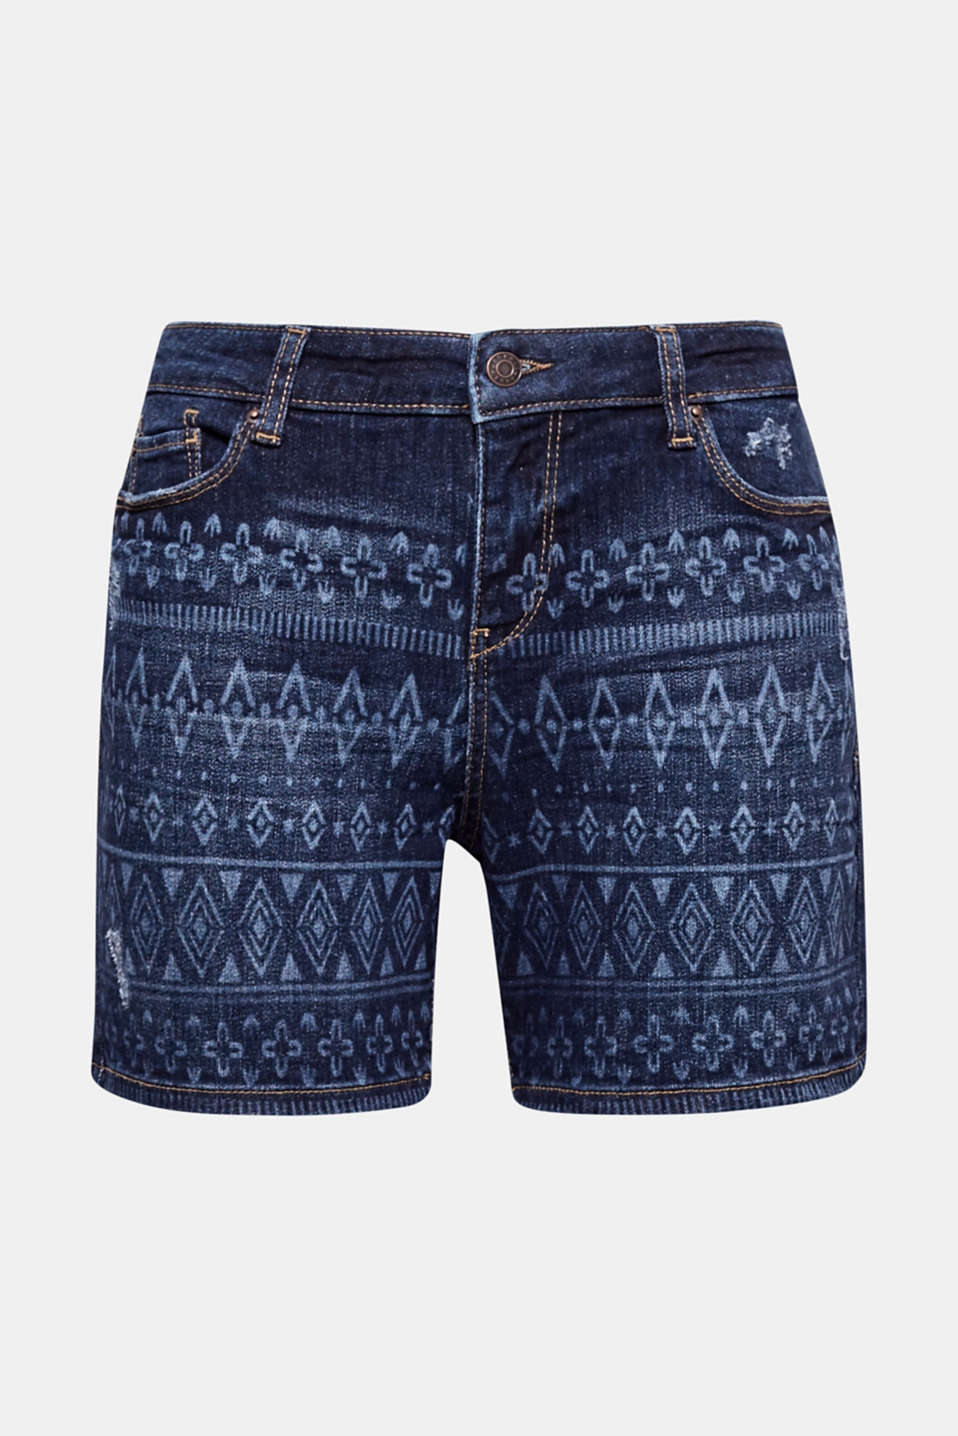 We love tribal-inspired looks! The trendy tribal style gives these denim shorts their character with added stretch for comfort.